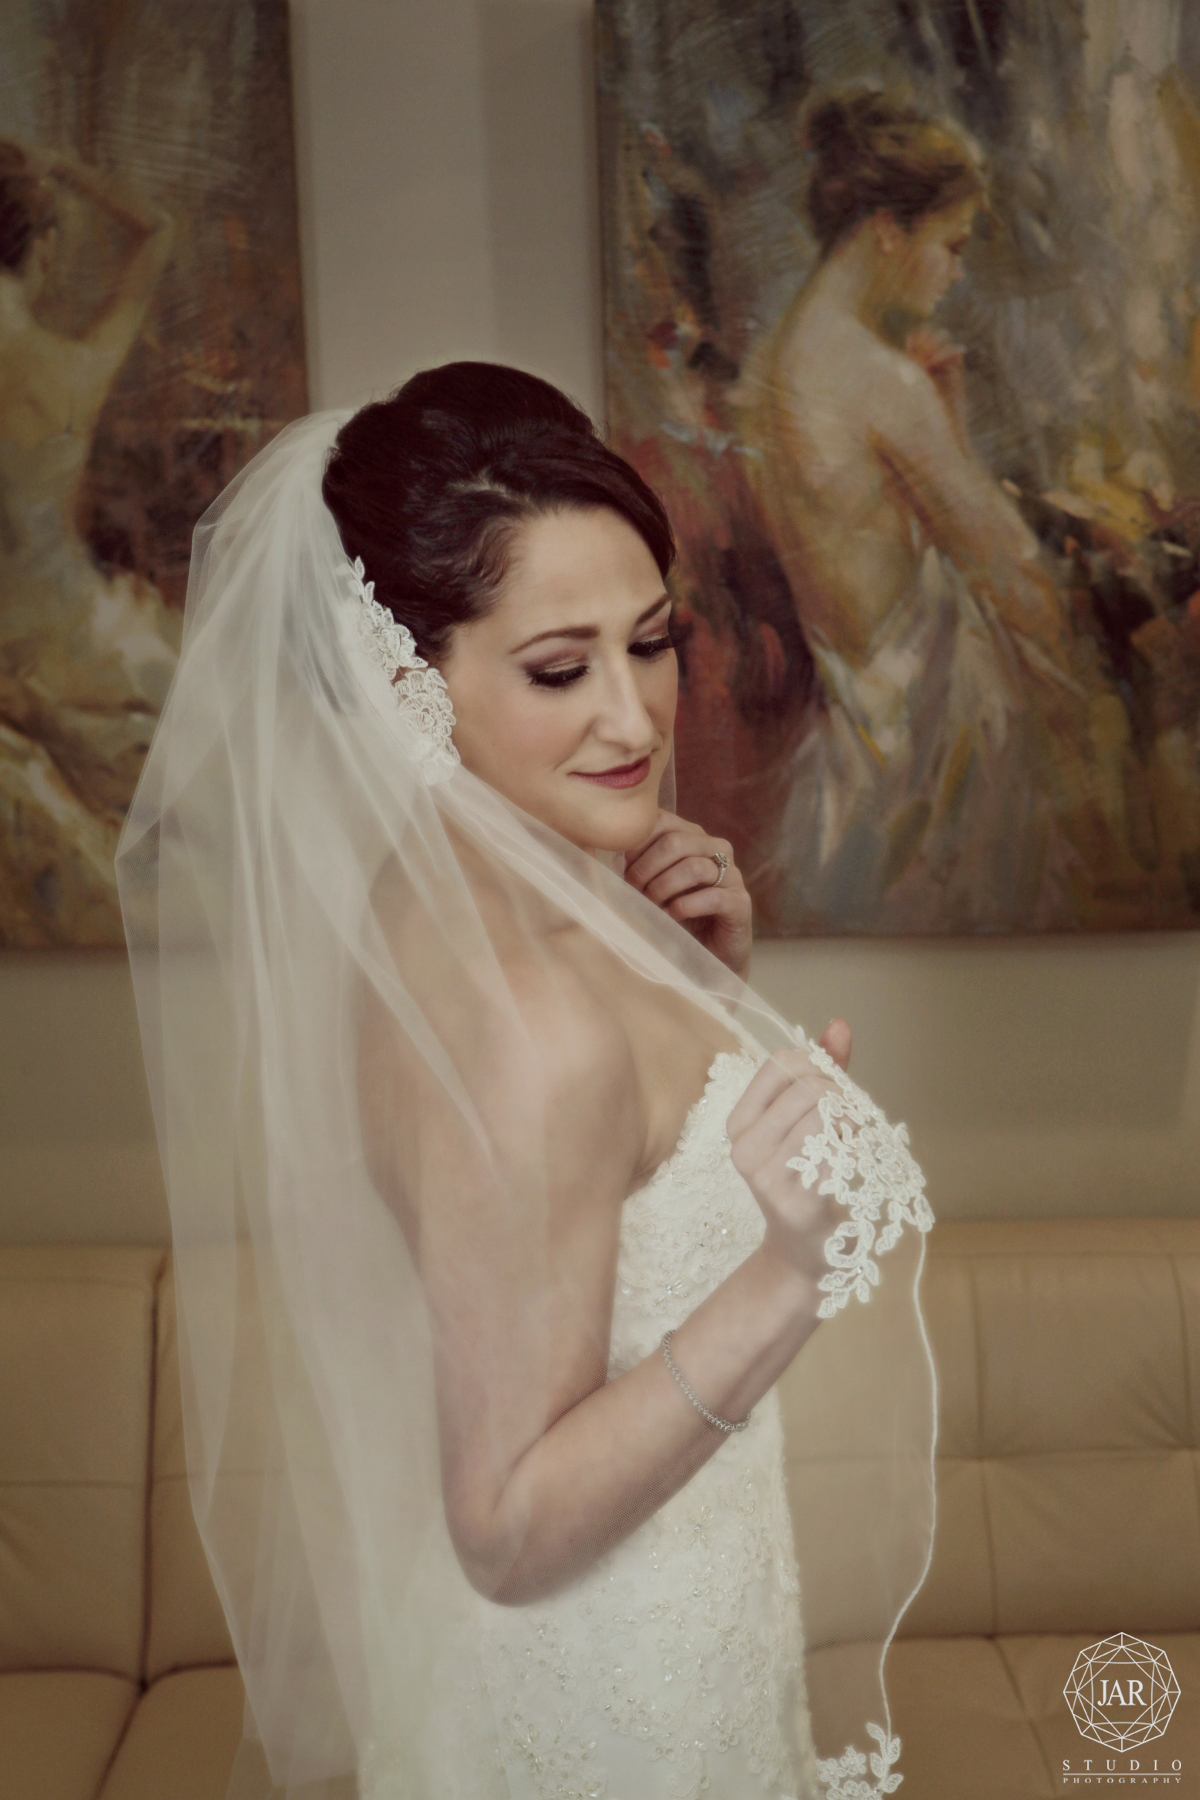 07-beautiful-bride-veil-orlando-jarstudio-photography.JPG